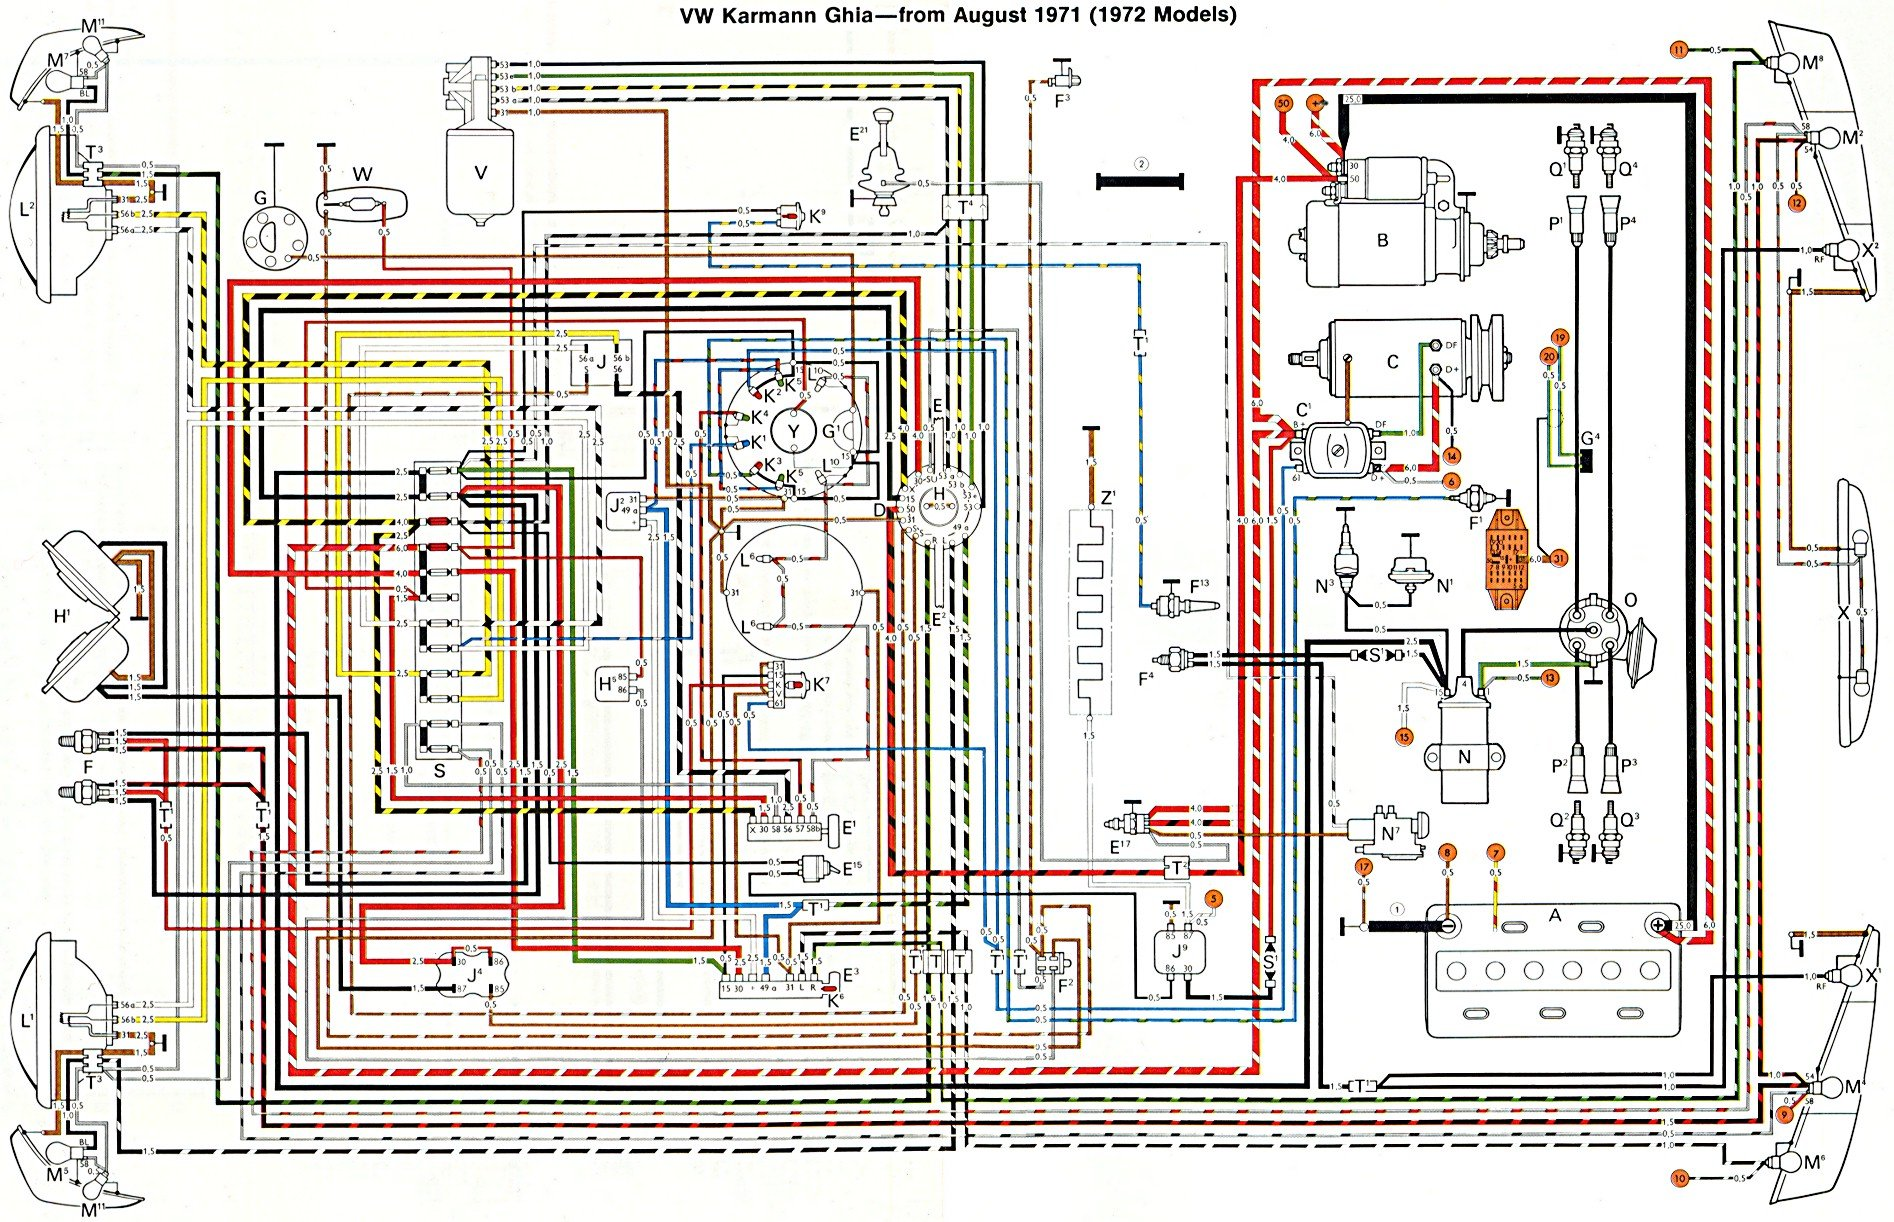 72ghia thesamba com karmann ghia wiring diagrams porsche 356 wiring diagram at bayanpartner.co